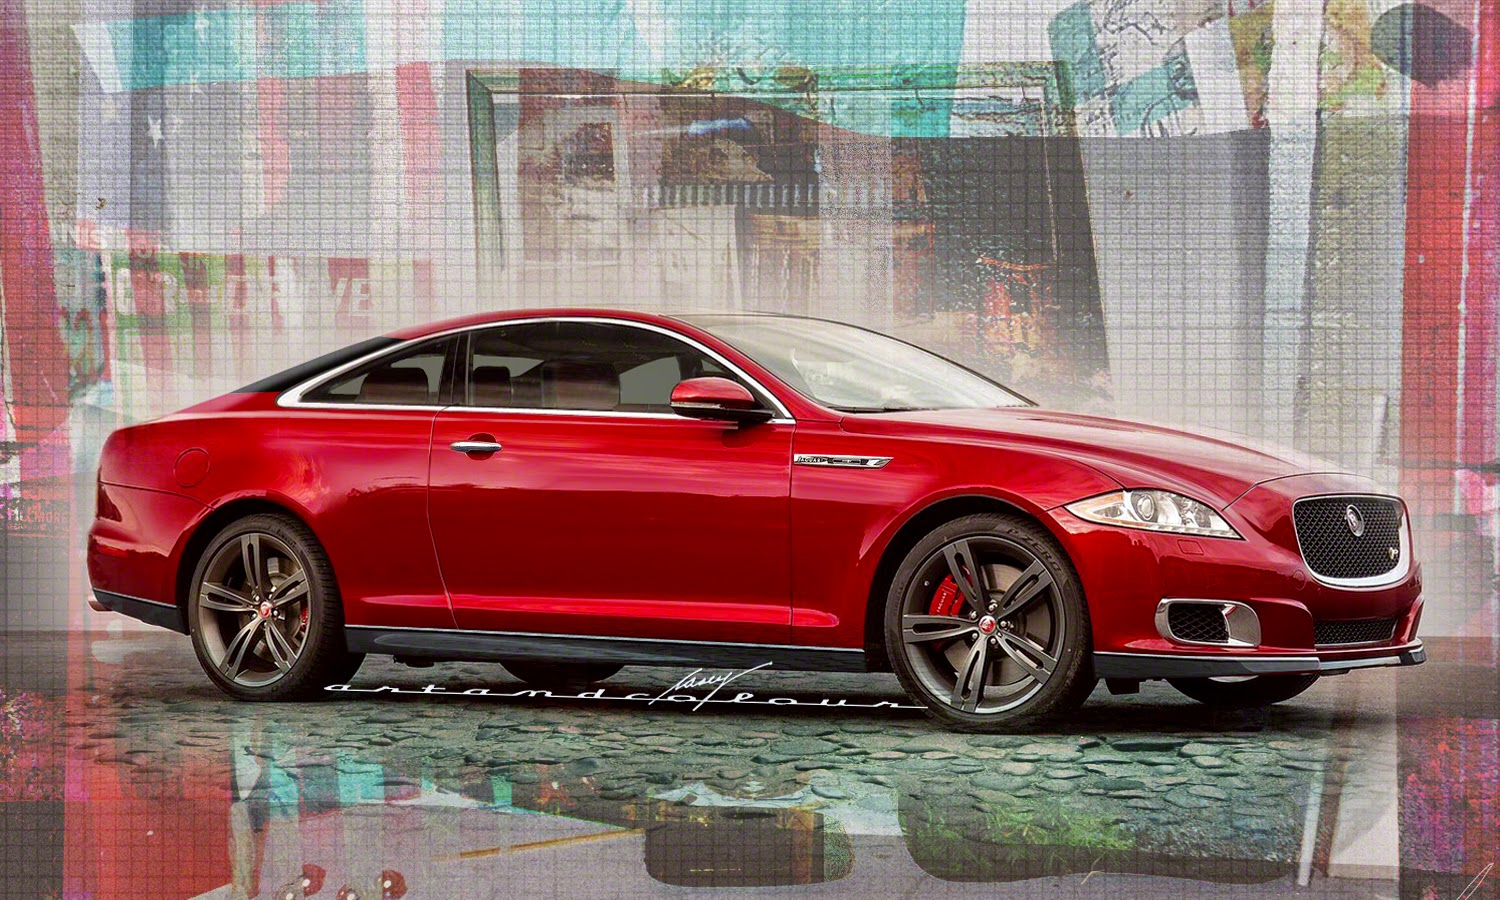 Casey/artandcolour/cars: 2015 Jaguar XJ Coupe